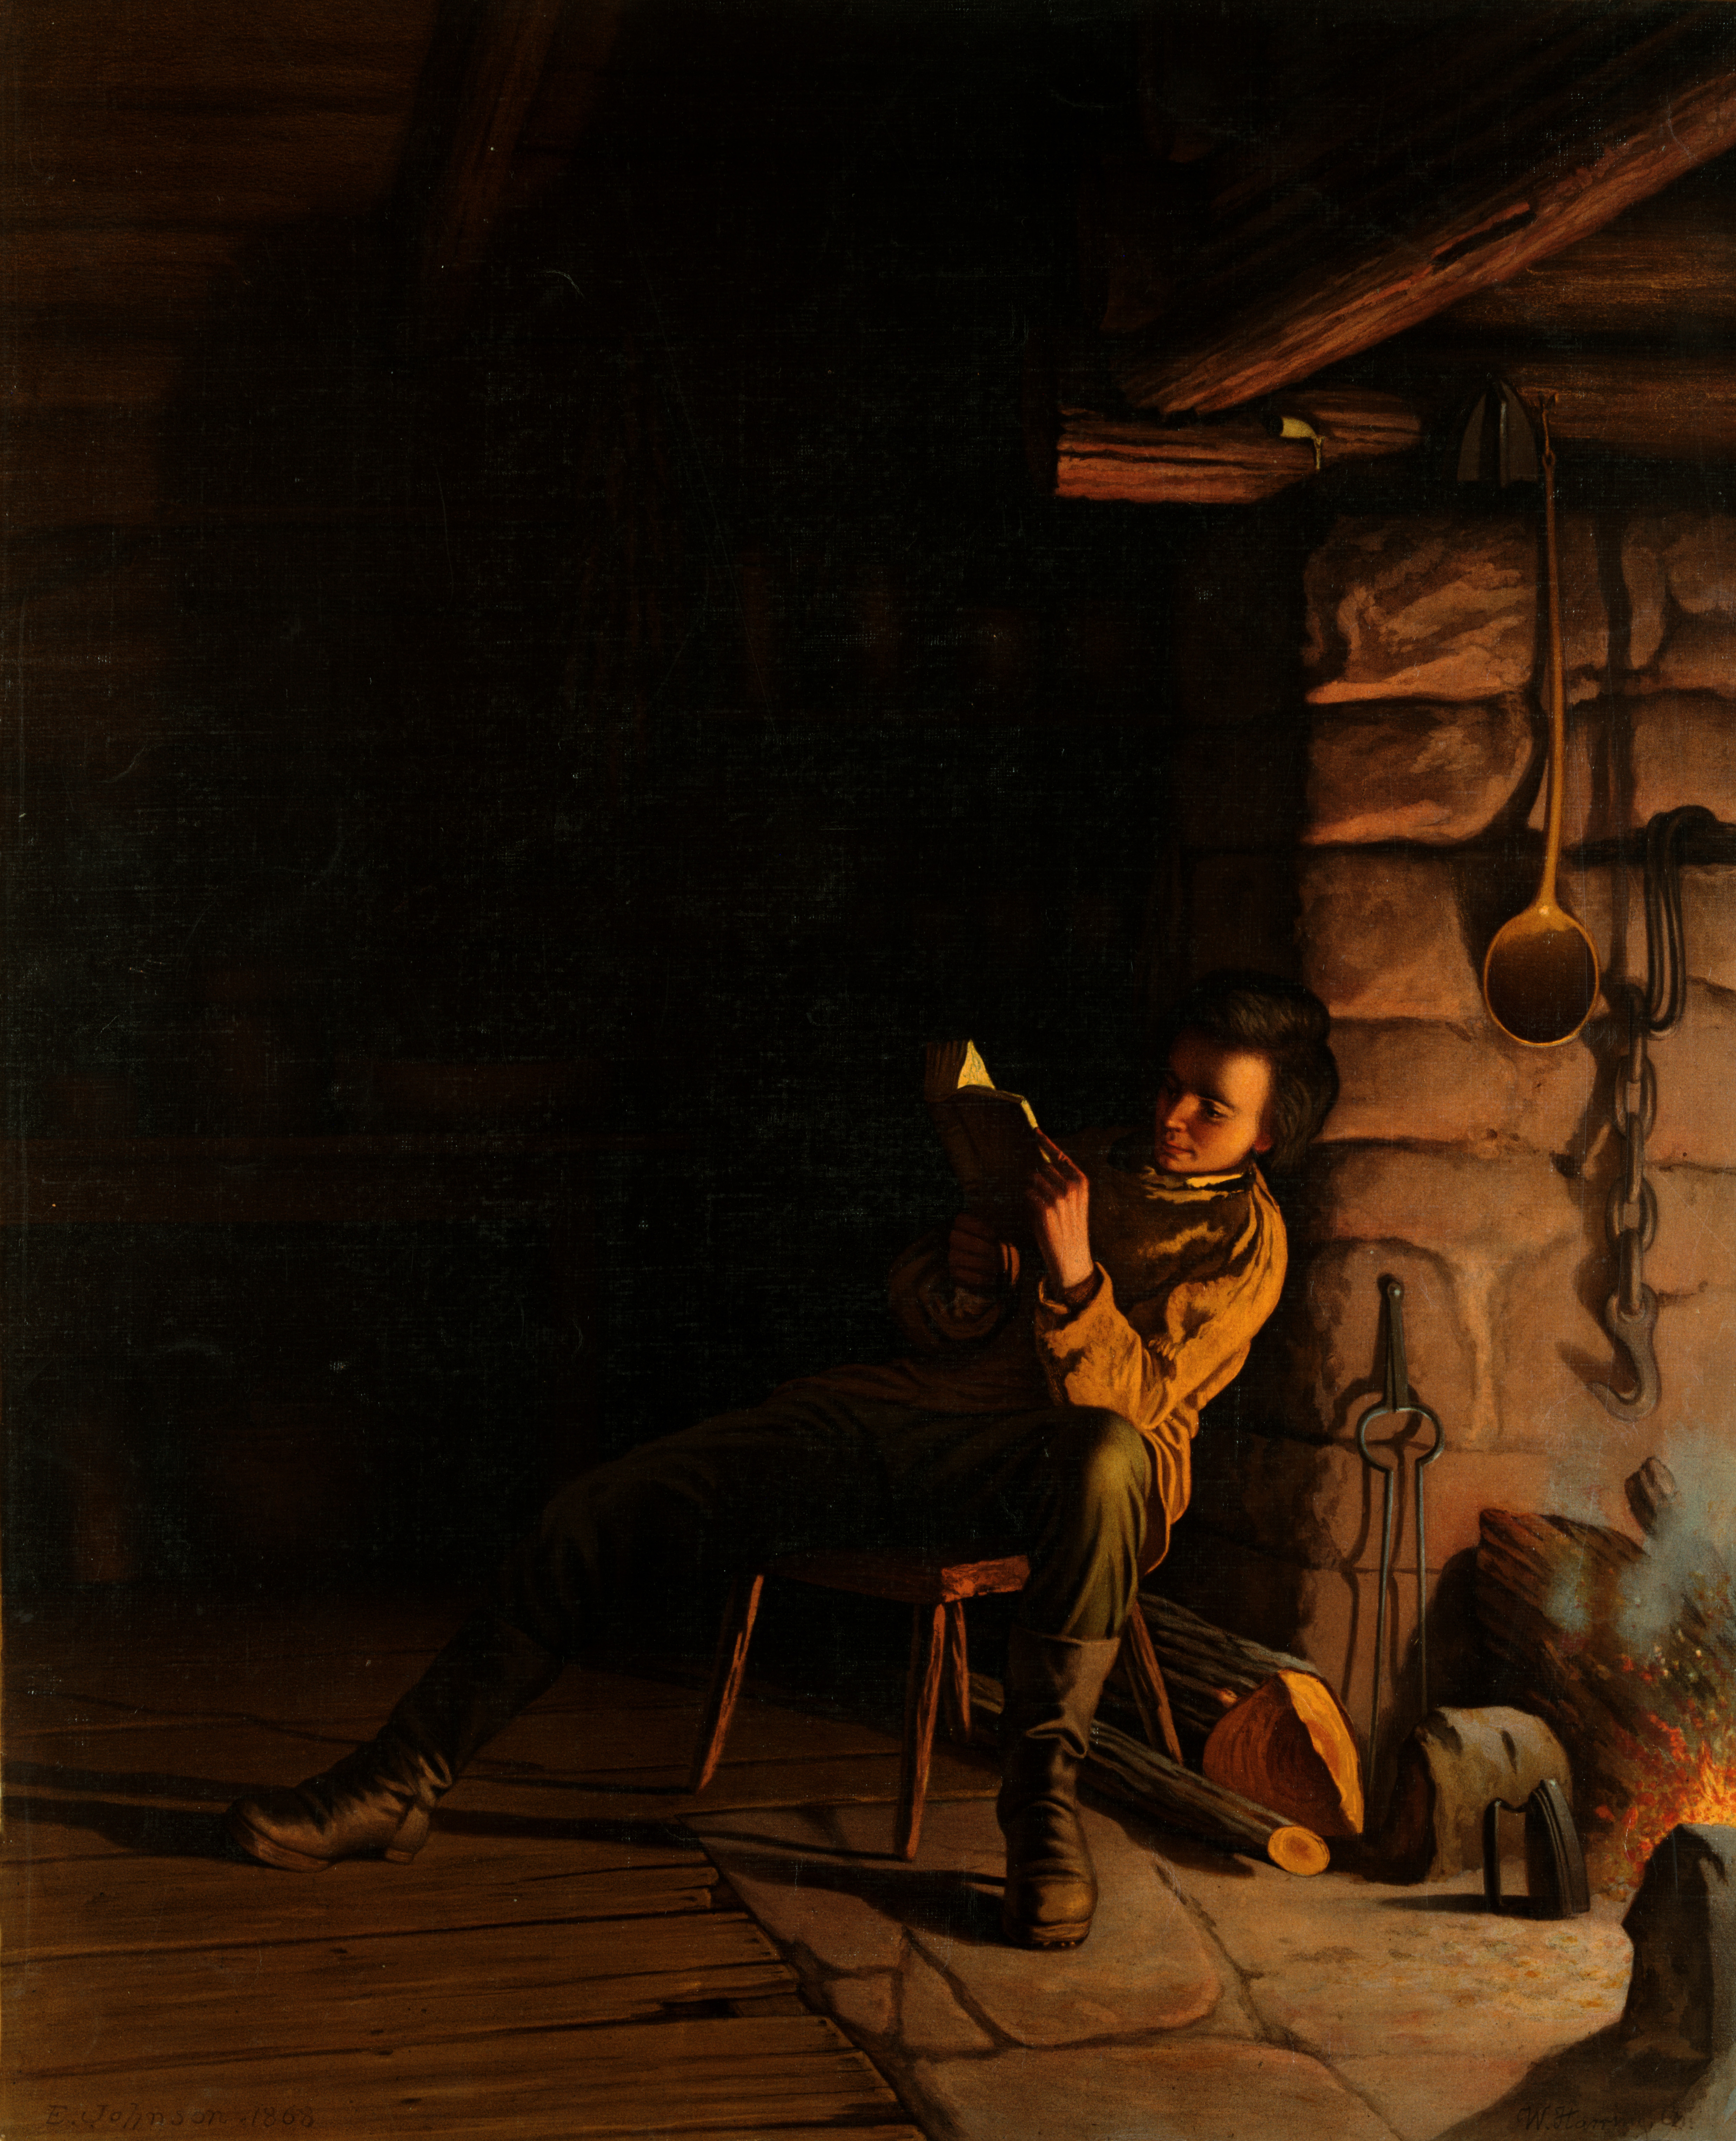 THE BOYHOOD OF ABRAHAM LINCOLN 1868 PAINTING BY EASTMAN JOHNSON BOY READS REPRO